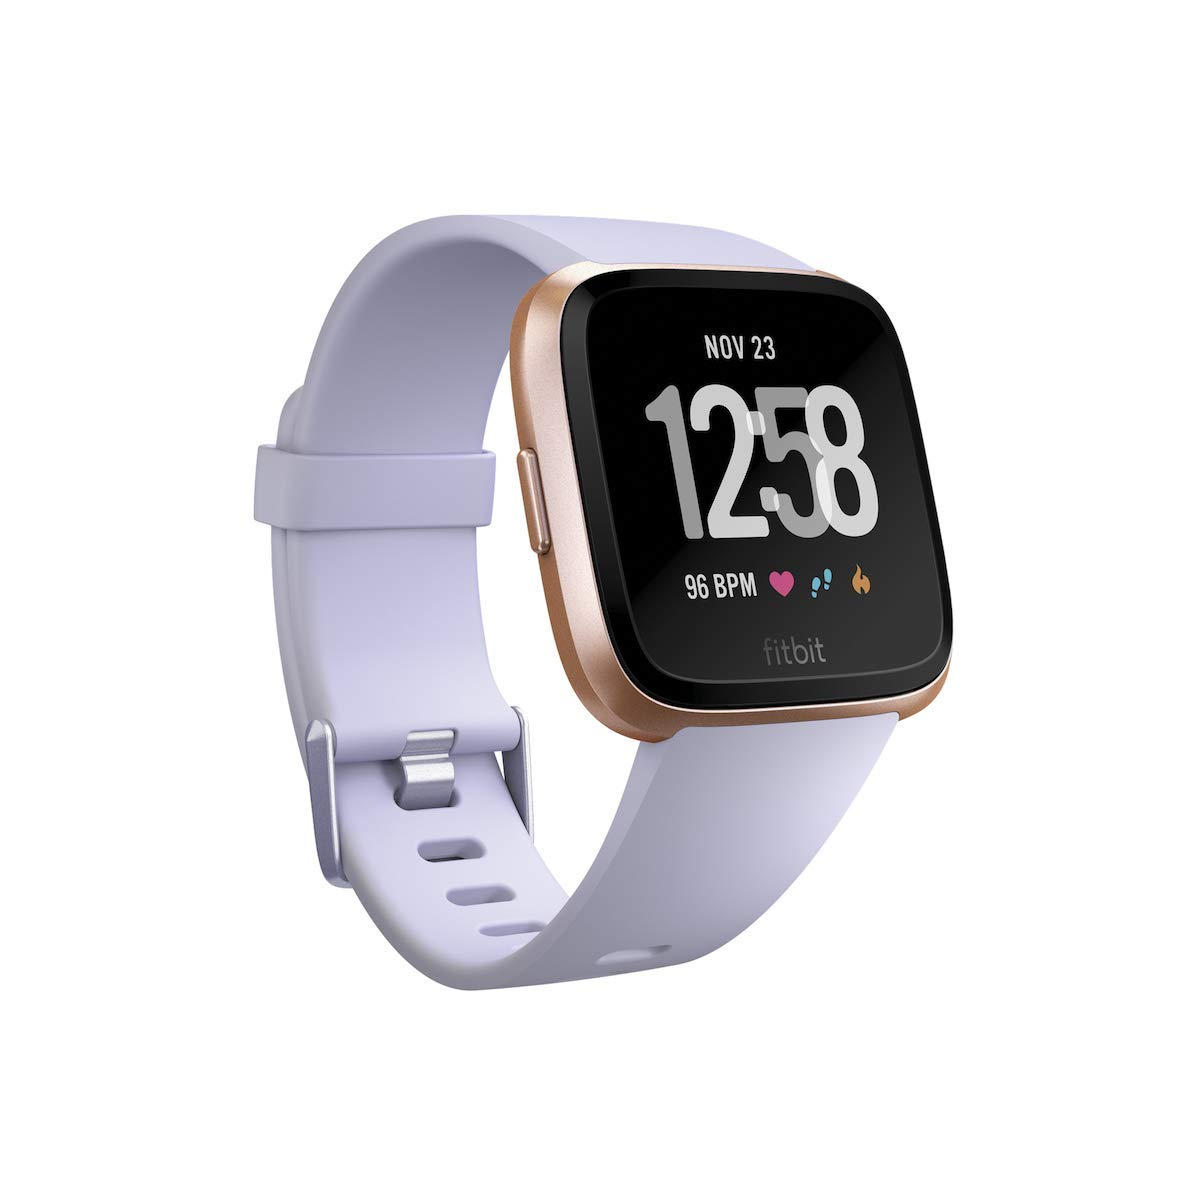 Fitbit Versa Smart Watch, One Size (S & L Bands Included) sleep trackers Sleep trackers review – the best sleep trackers to buy 515WhPCYRoL